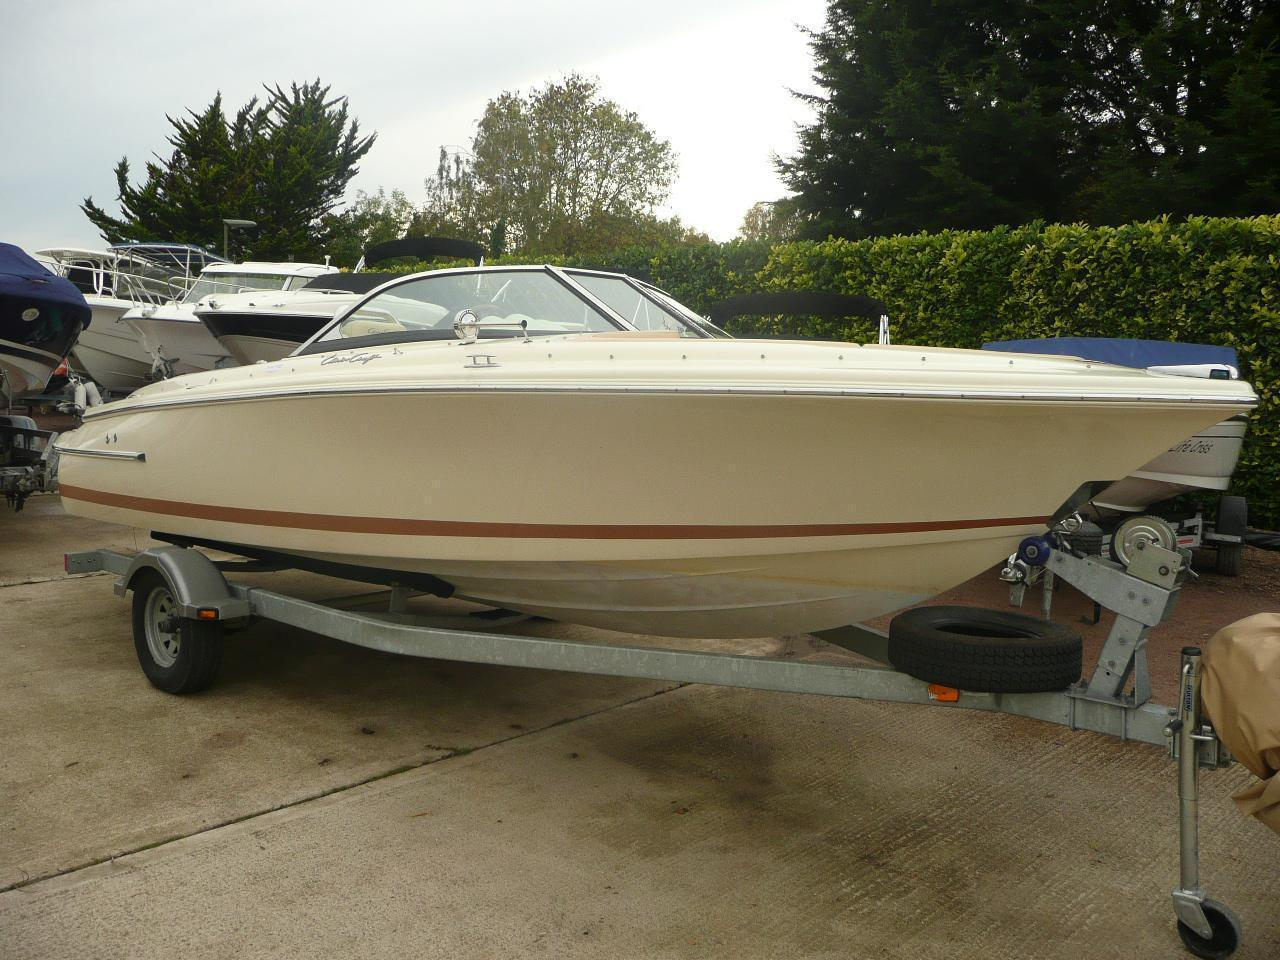 Chris Craft Launch 20 Standard Edition, Chertsey, Surrey